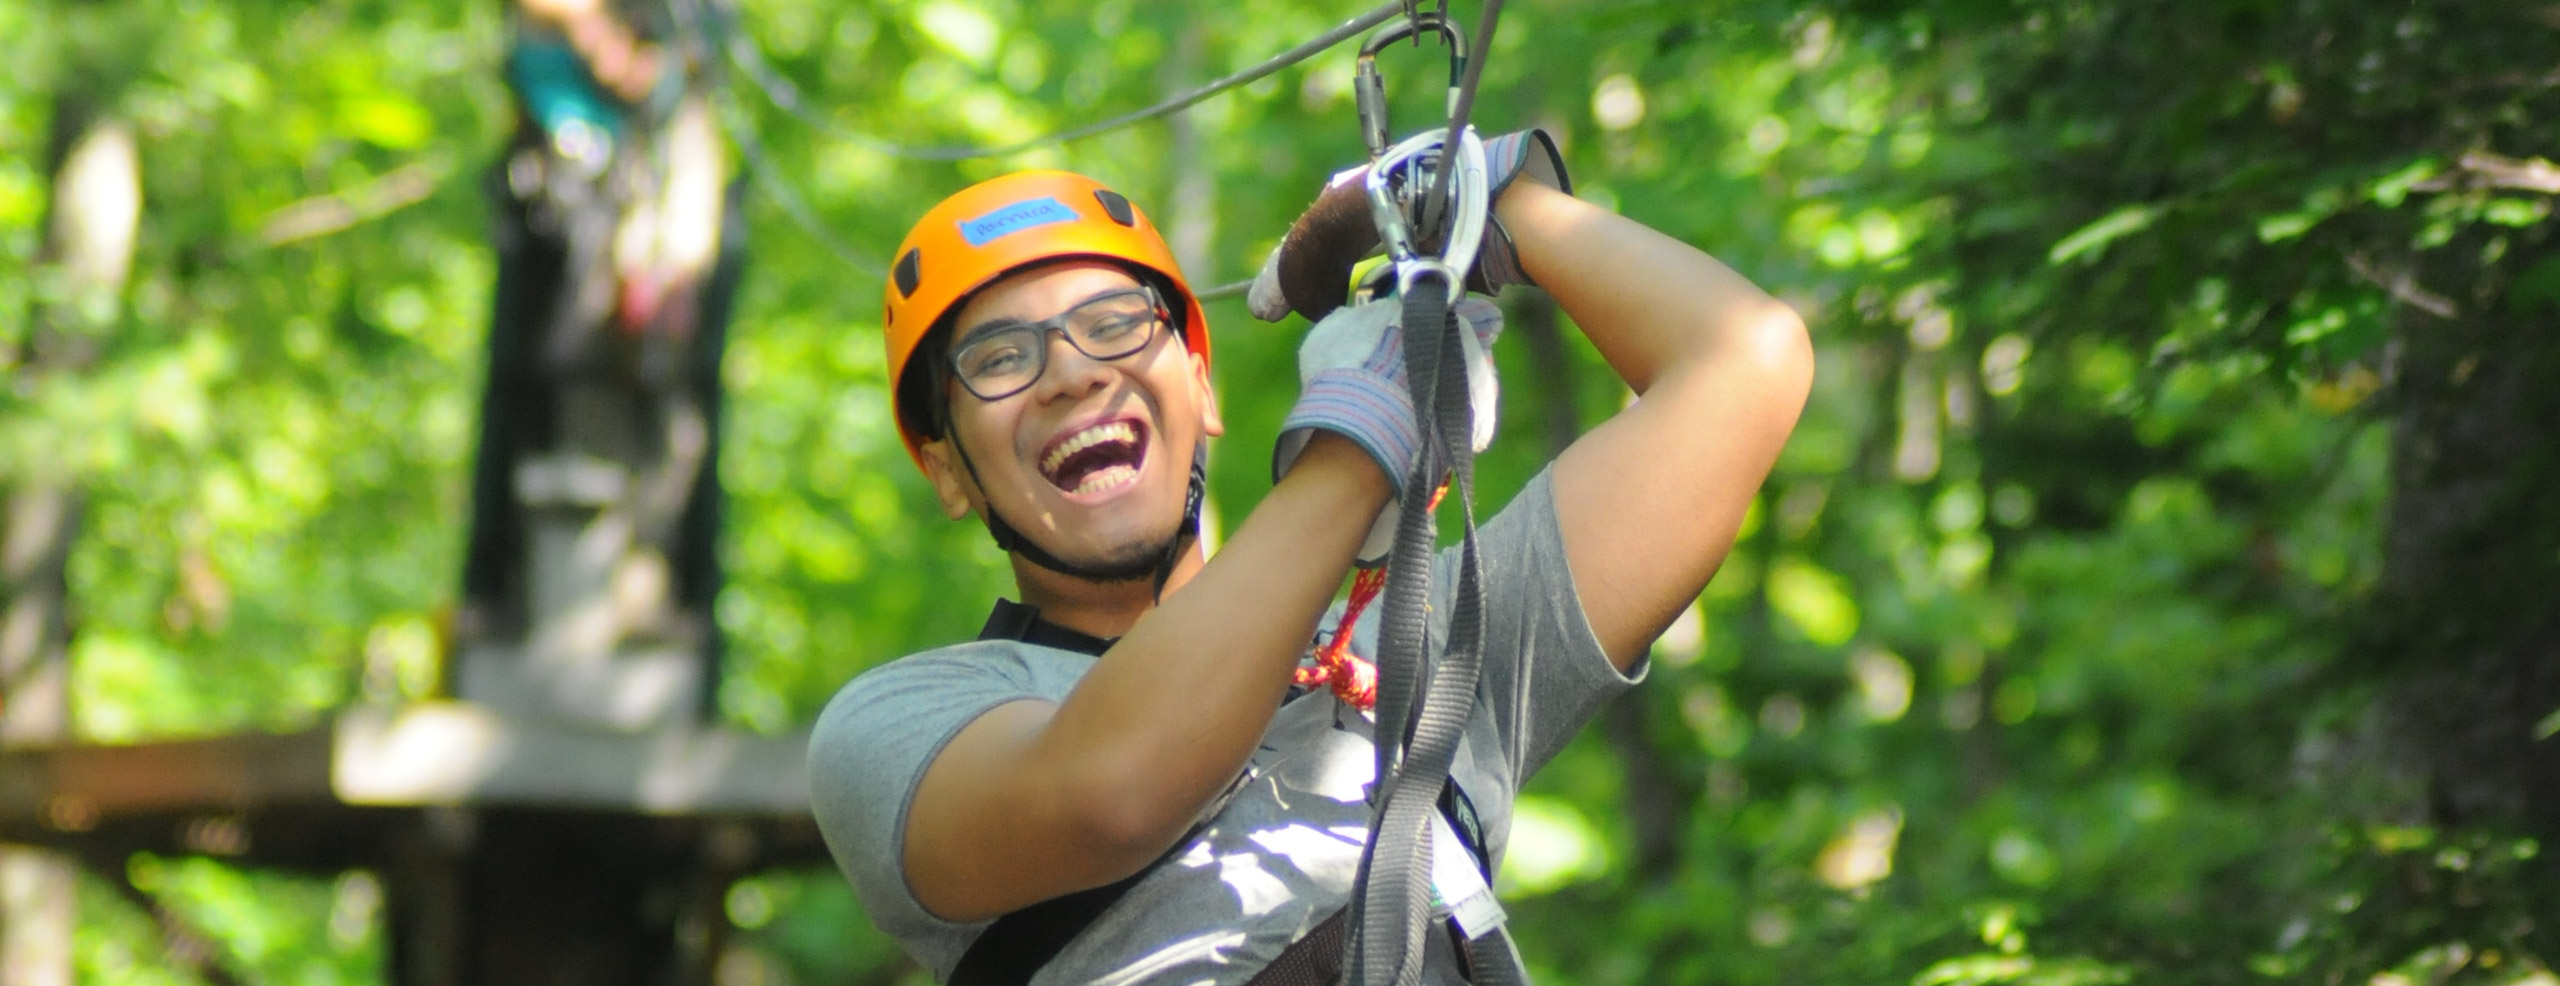 Man with a large open smile zipping through the trees